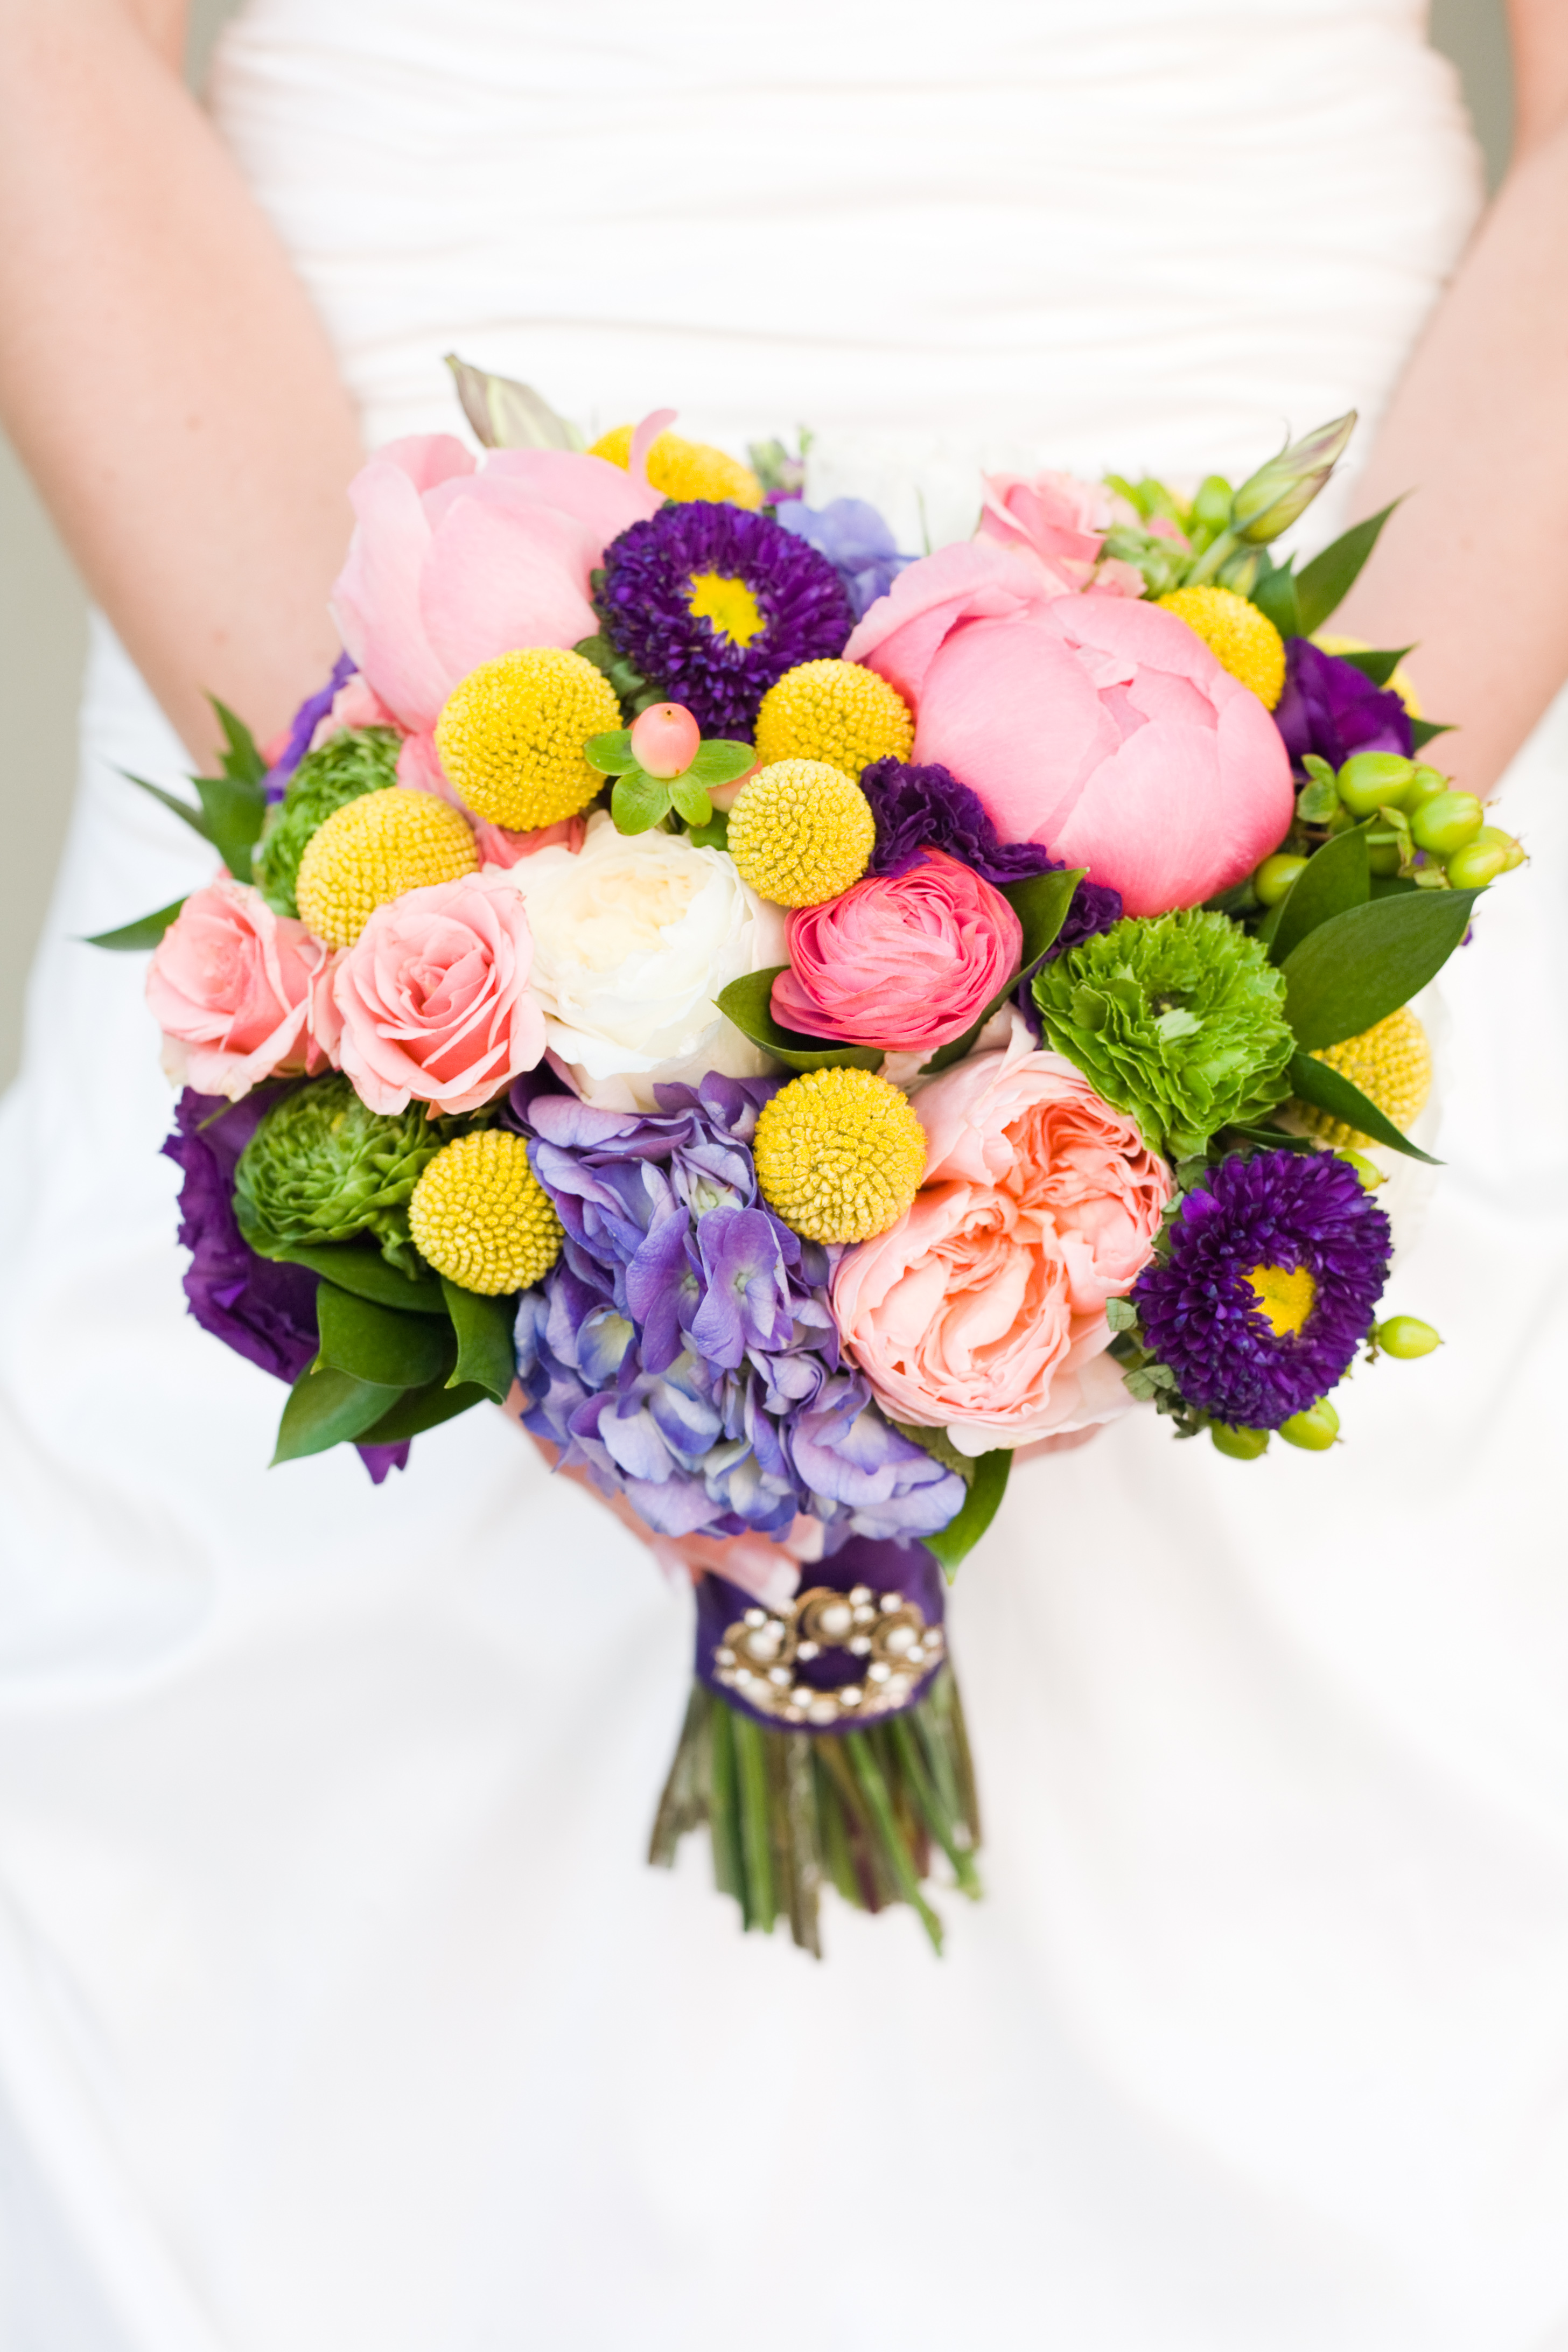 Calie rose wedding flowers utah coral peach yellow green purple wedding bouquet utah wedding flowers calie rose mightylinksfo